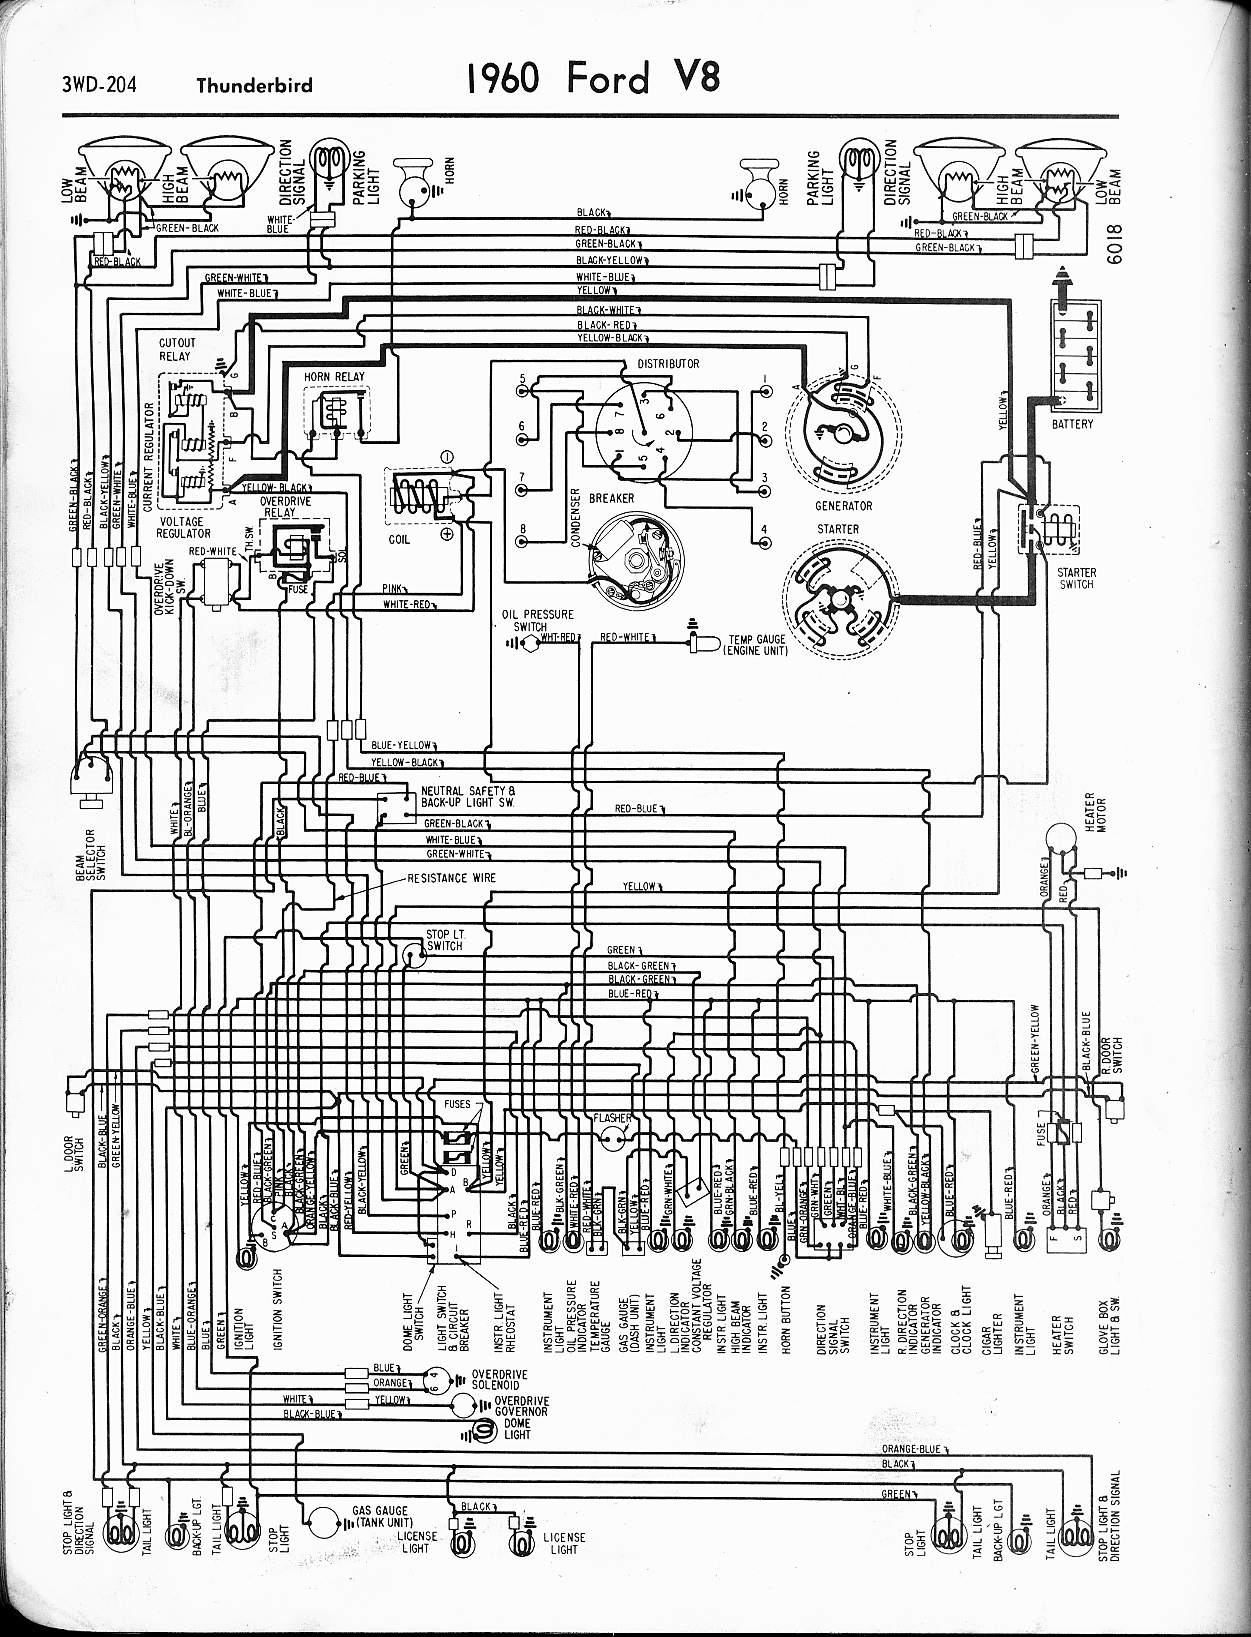 alarm system wiring diagram 1996 ford thunderbird ac wiring diagram 1996 ford thunderbird